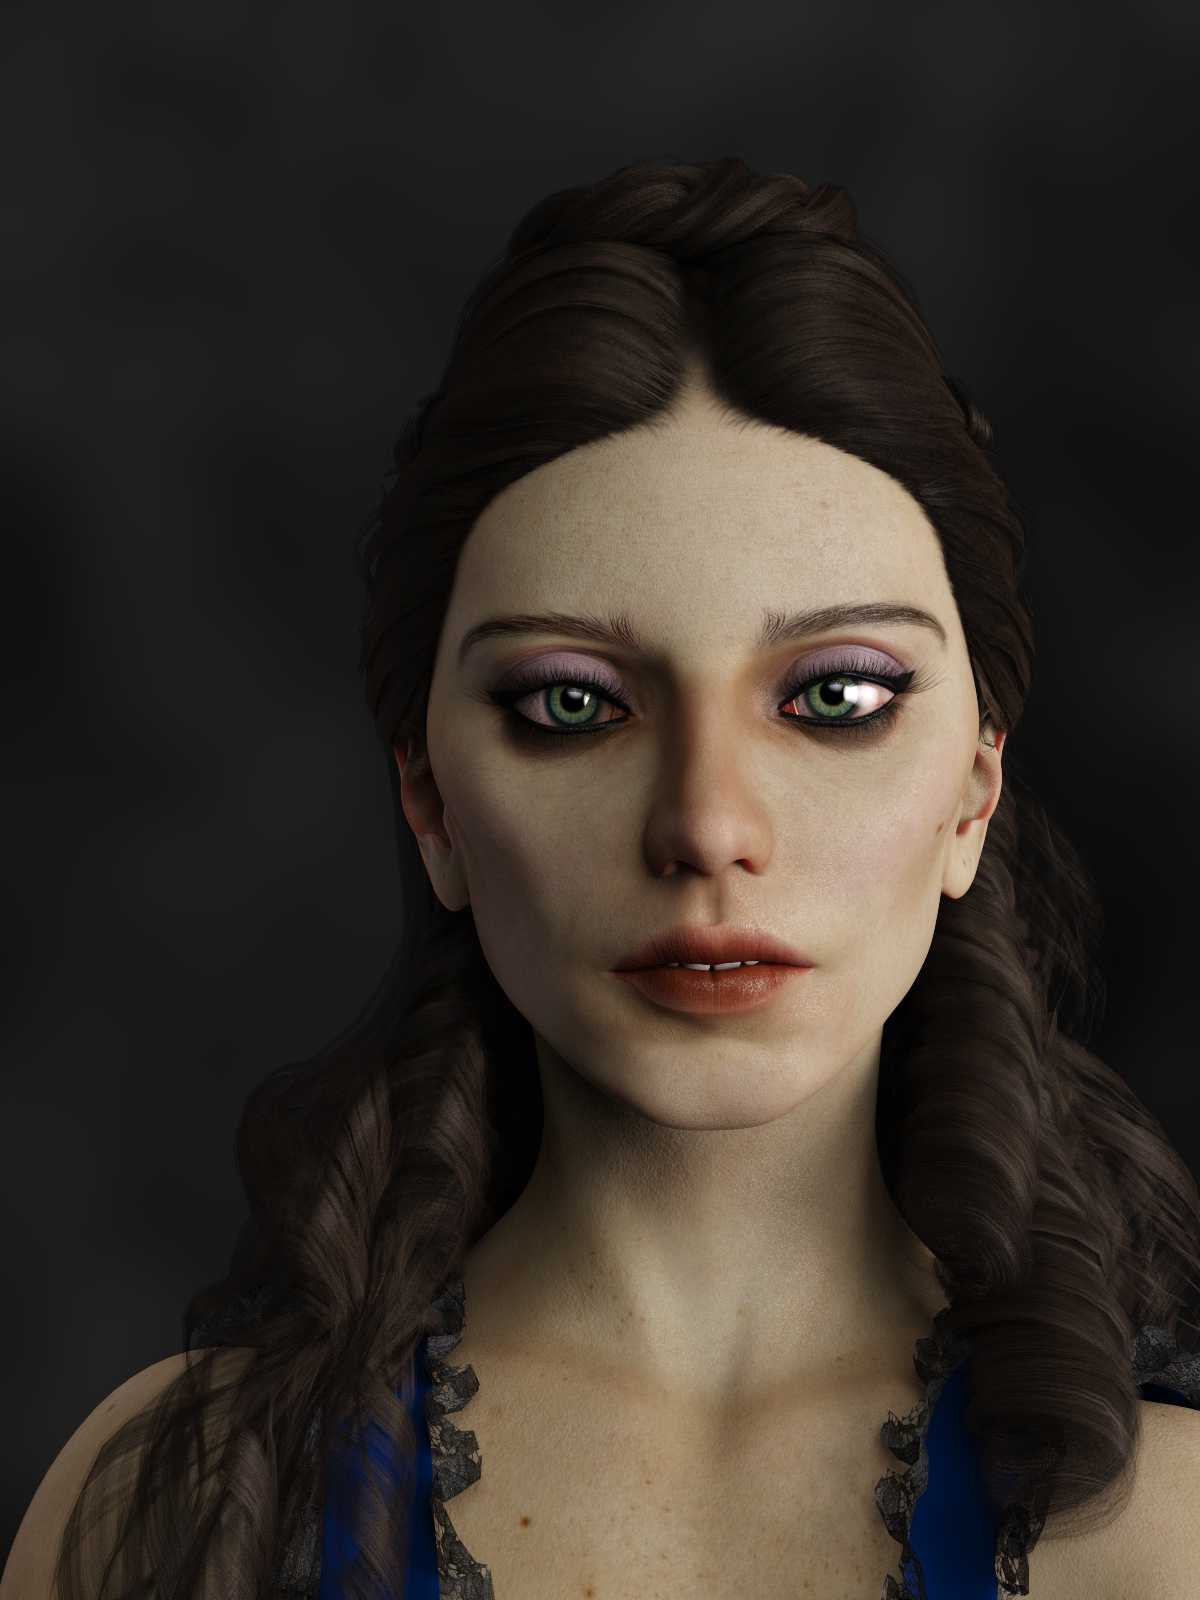 Clemency for Genesis 8 Females